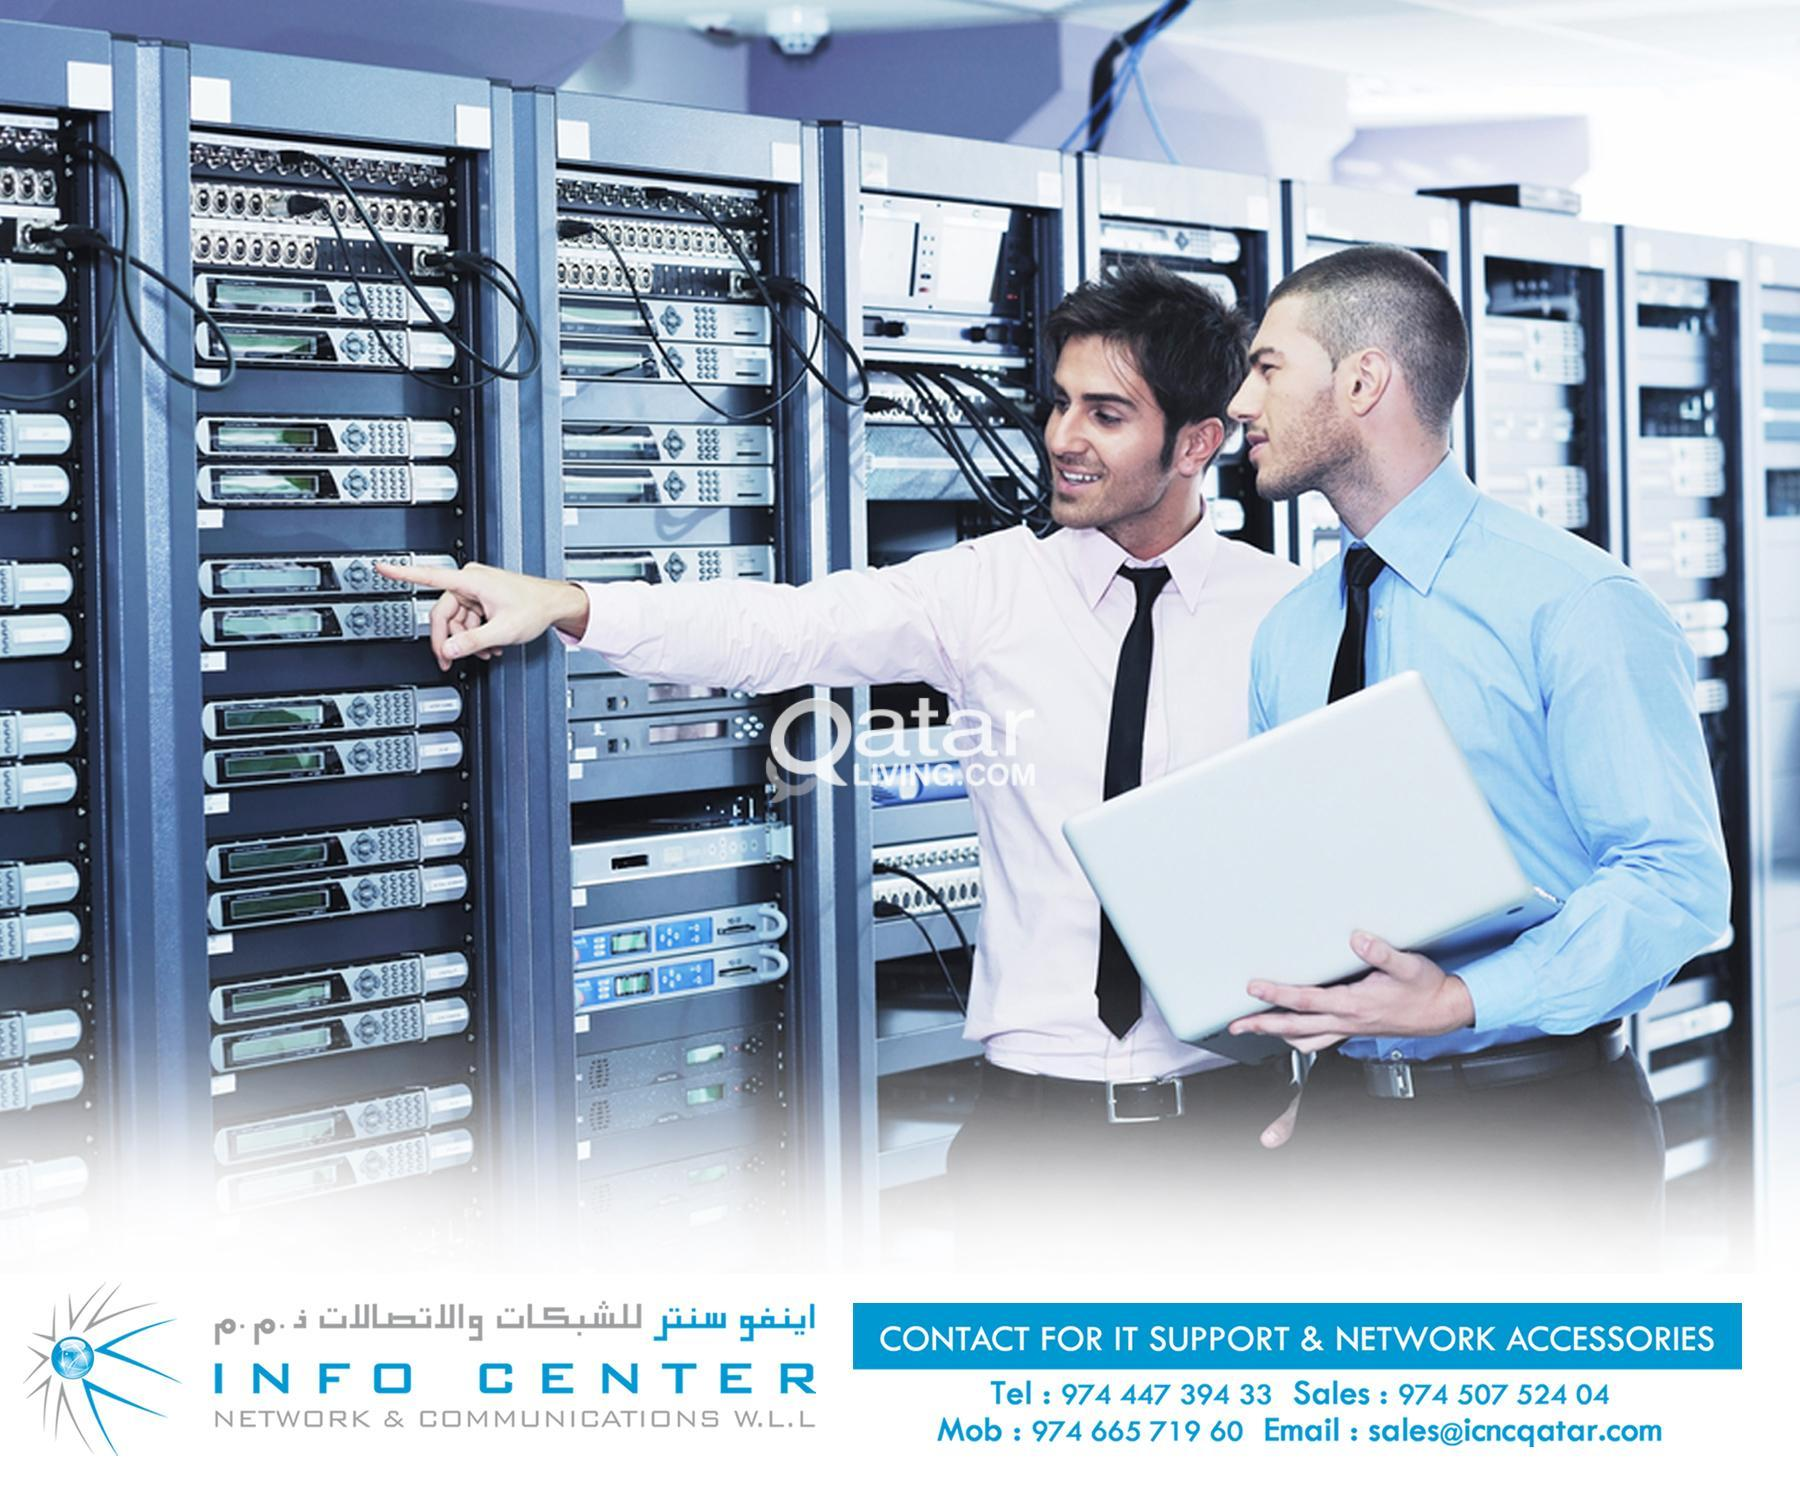 INFOCENTER NETWORK & COMMUNICATIONS